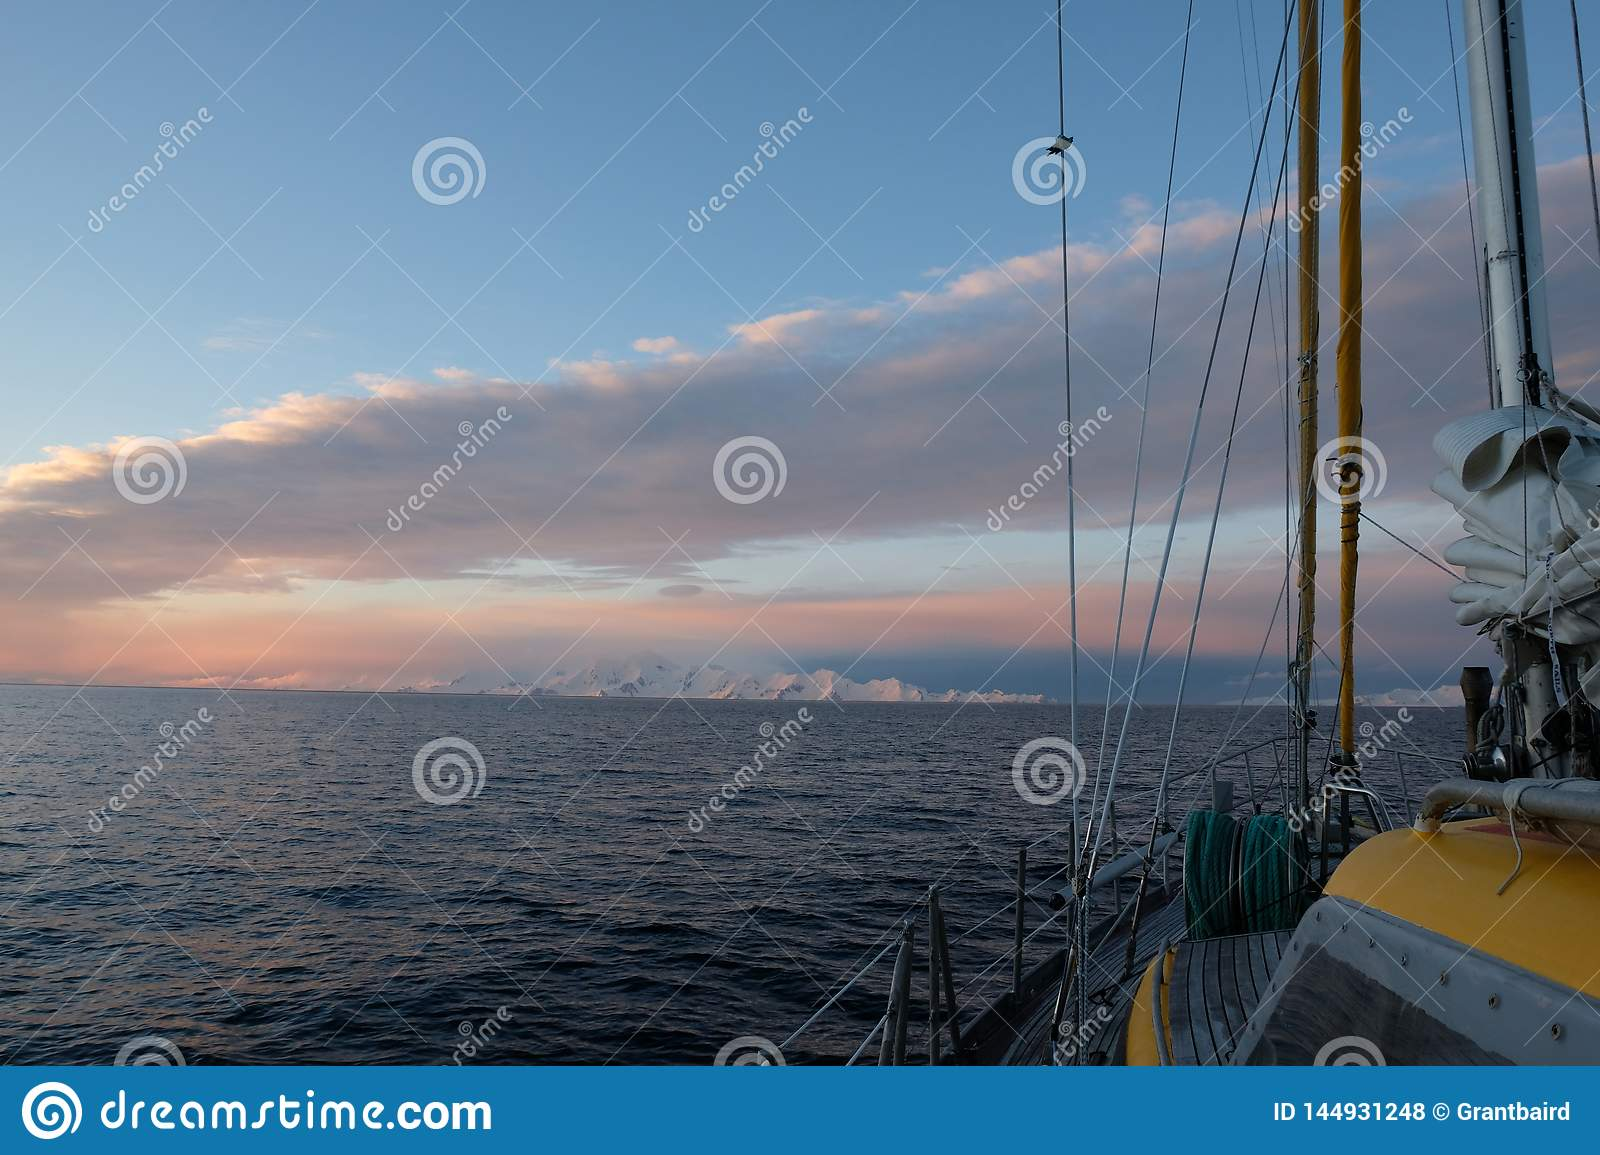 Antarctica sailing under a pink and blue sky